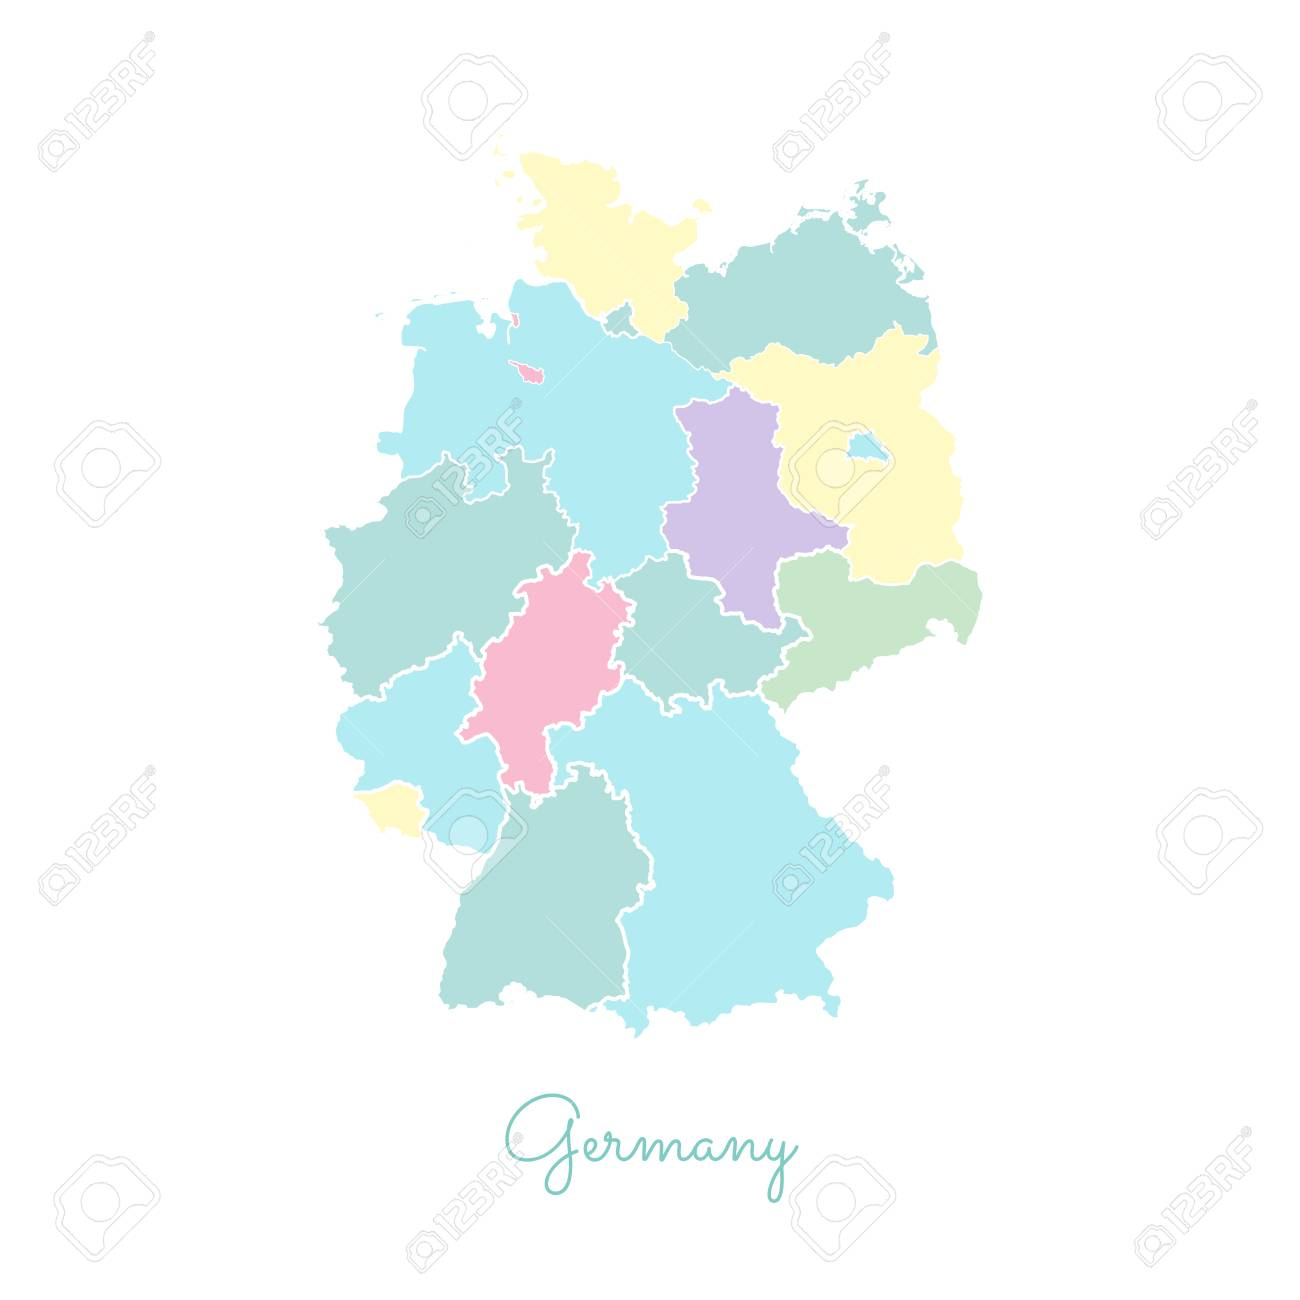 Map Of Germany Regions.Germany Region Map Colorful With White Outline Detailed Map